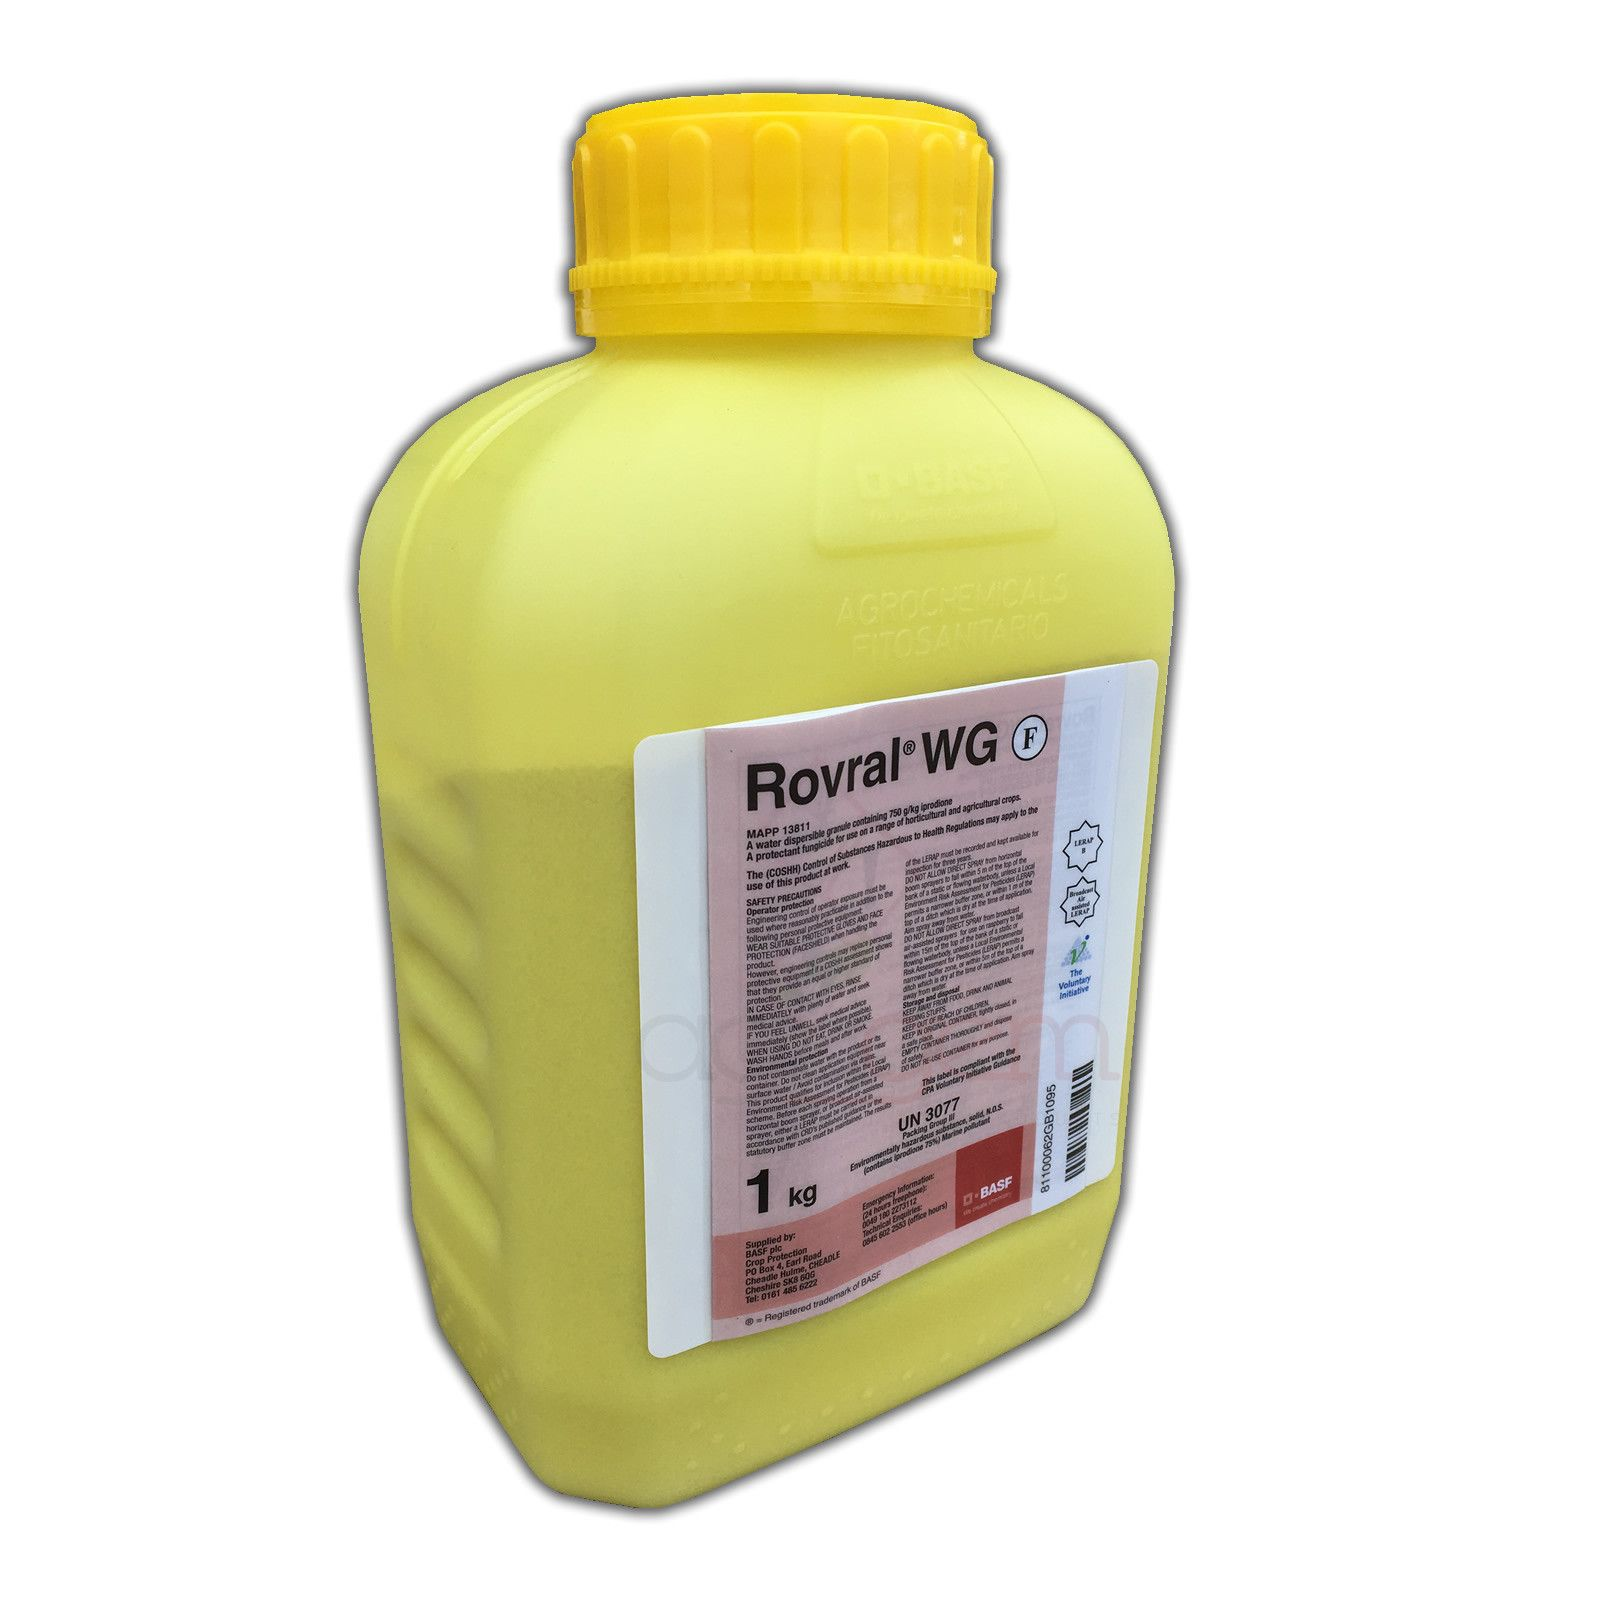 Rovral WG 1kg DISCONTINUED